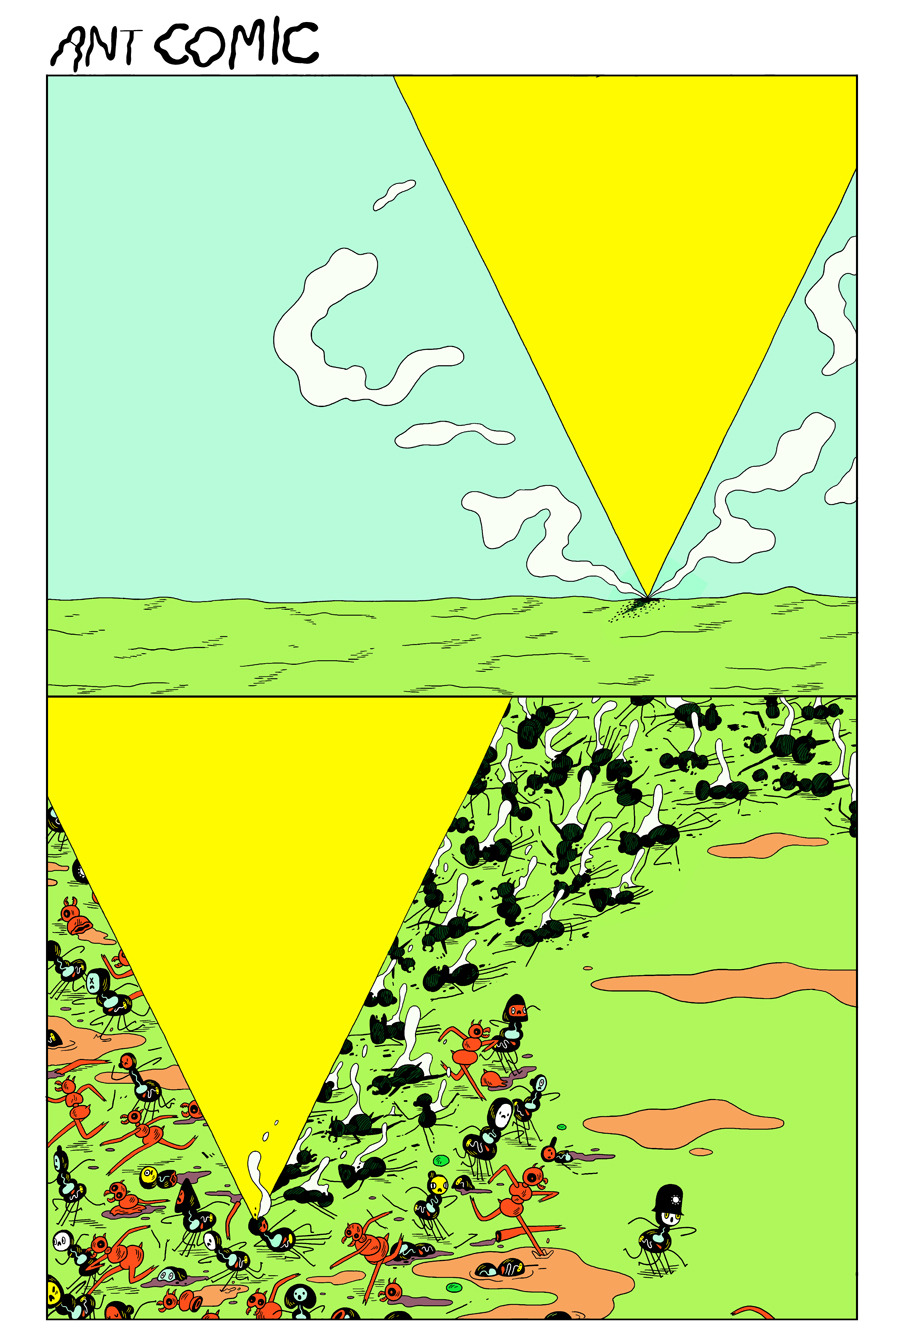 kingtrash:  Ant Comic 29 http://michaeldeforge.wordpress.com/category/ant-comic/  These colors!!!!